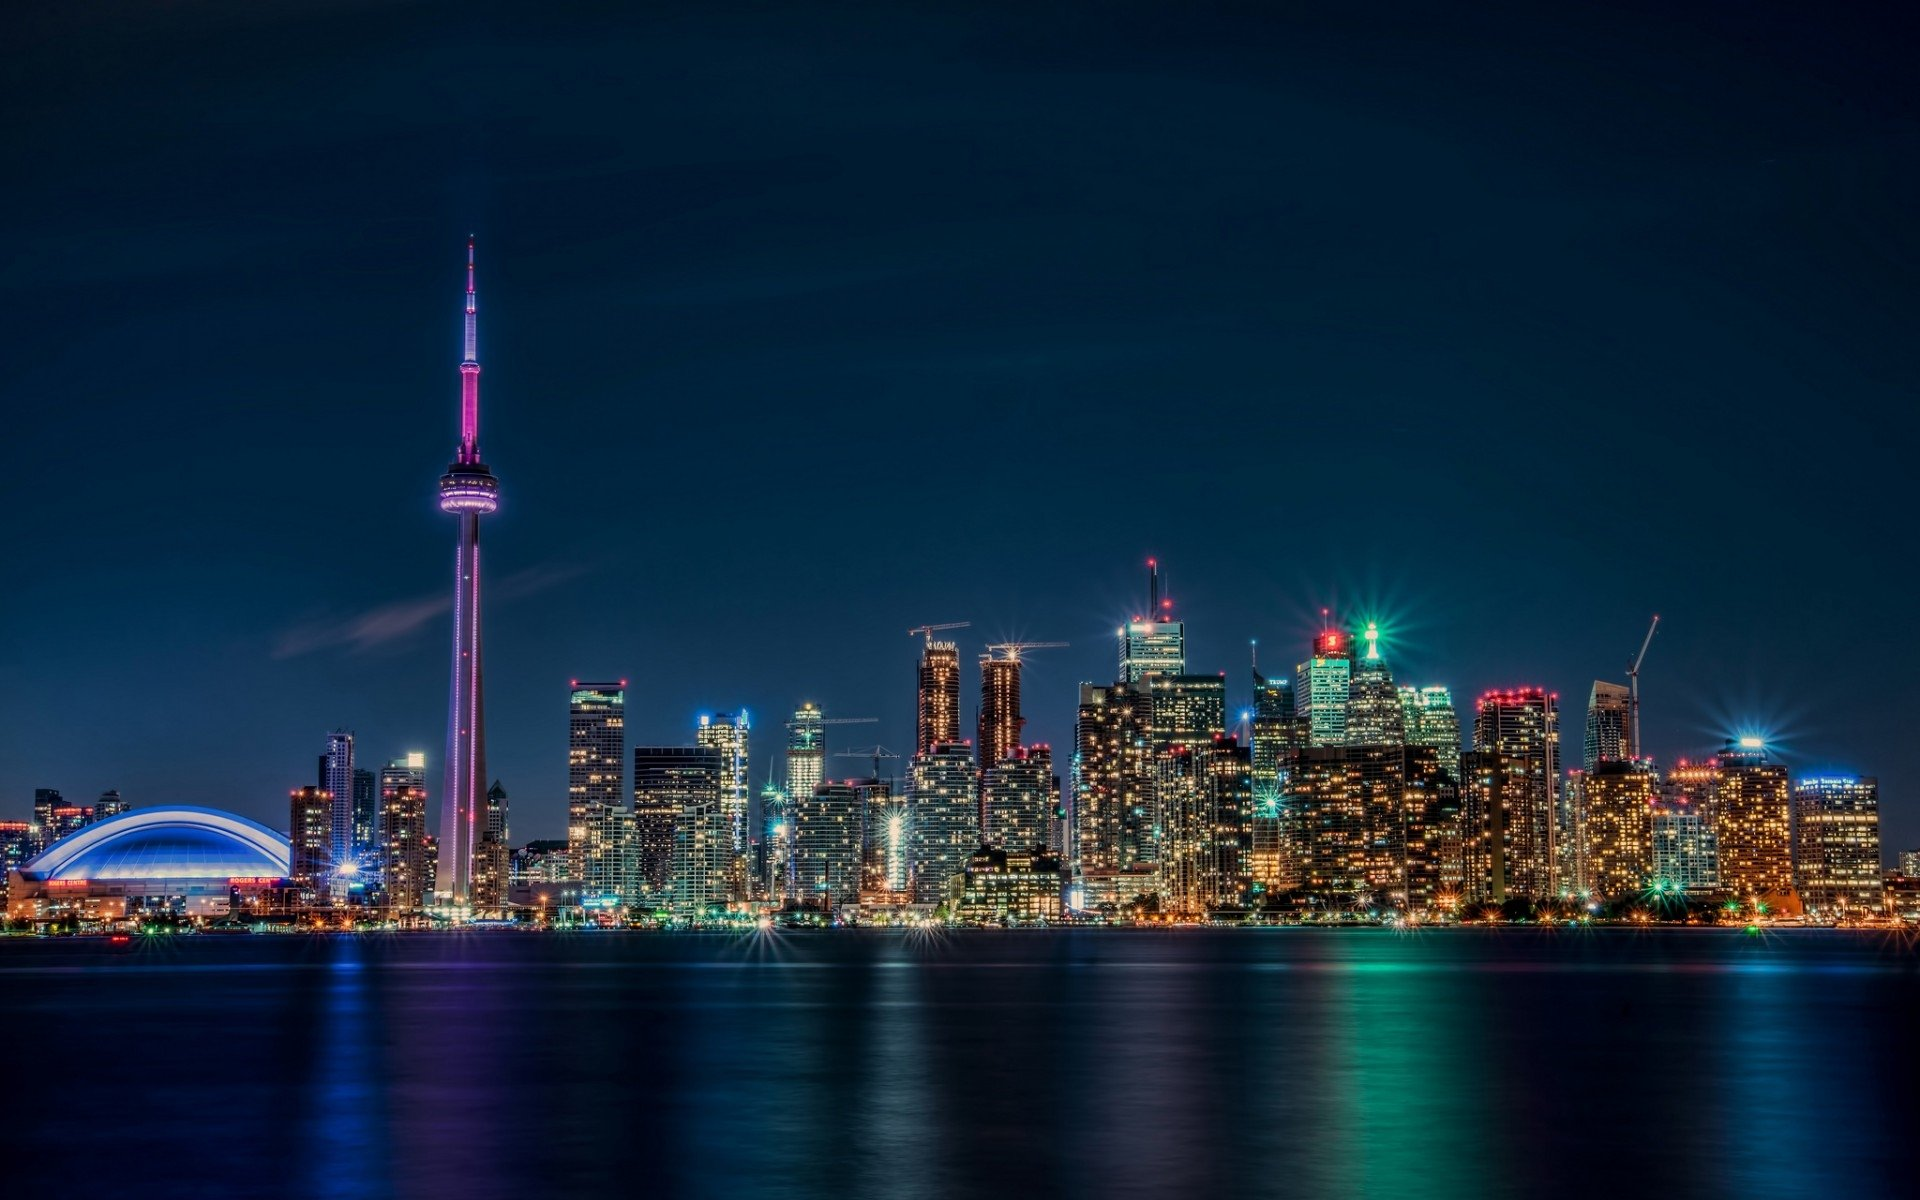 HD Wallpaper Wallpaper Cities Toronto 1685 high quality Backgrounds 1920x1200